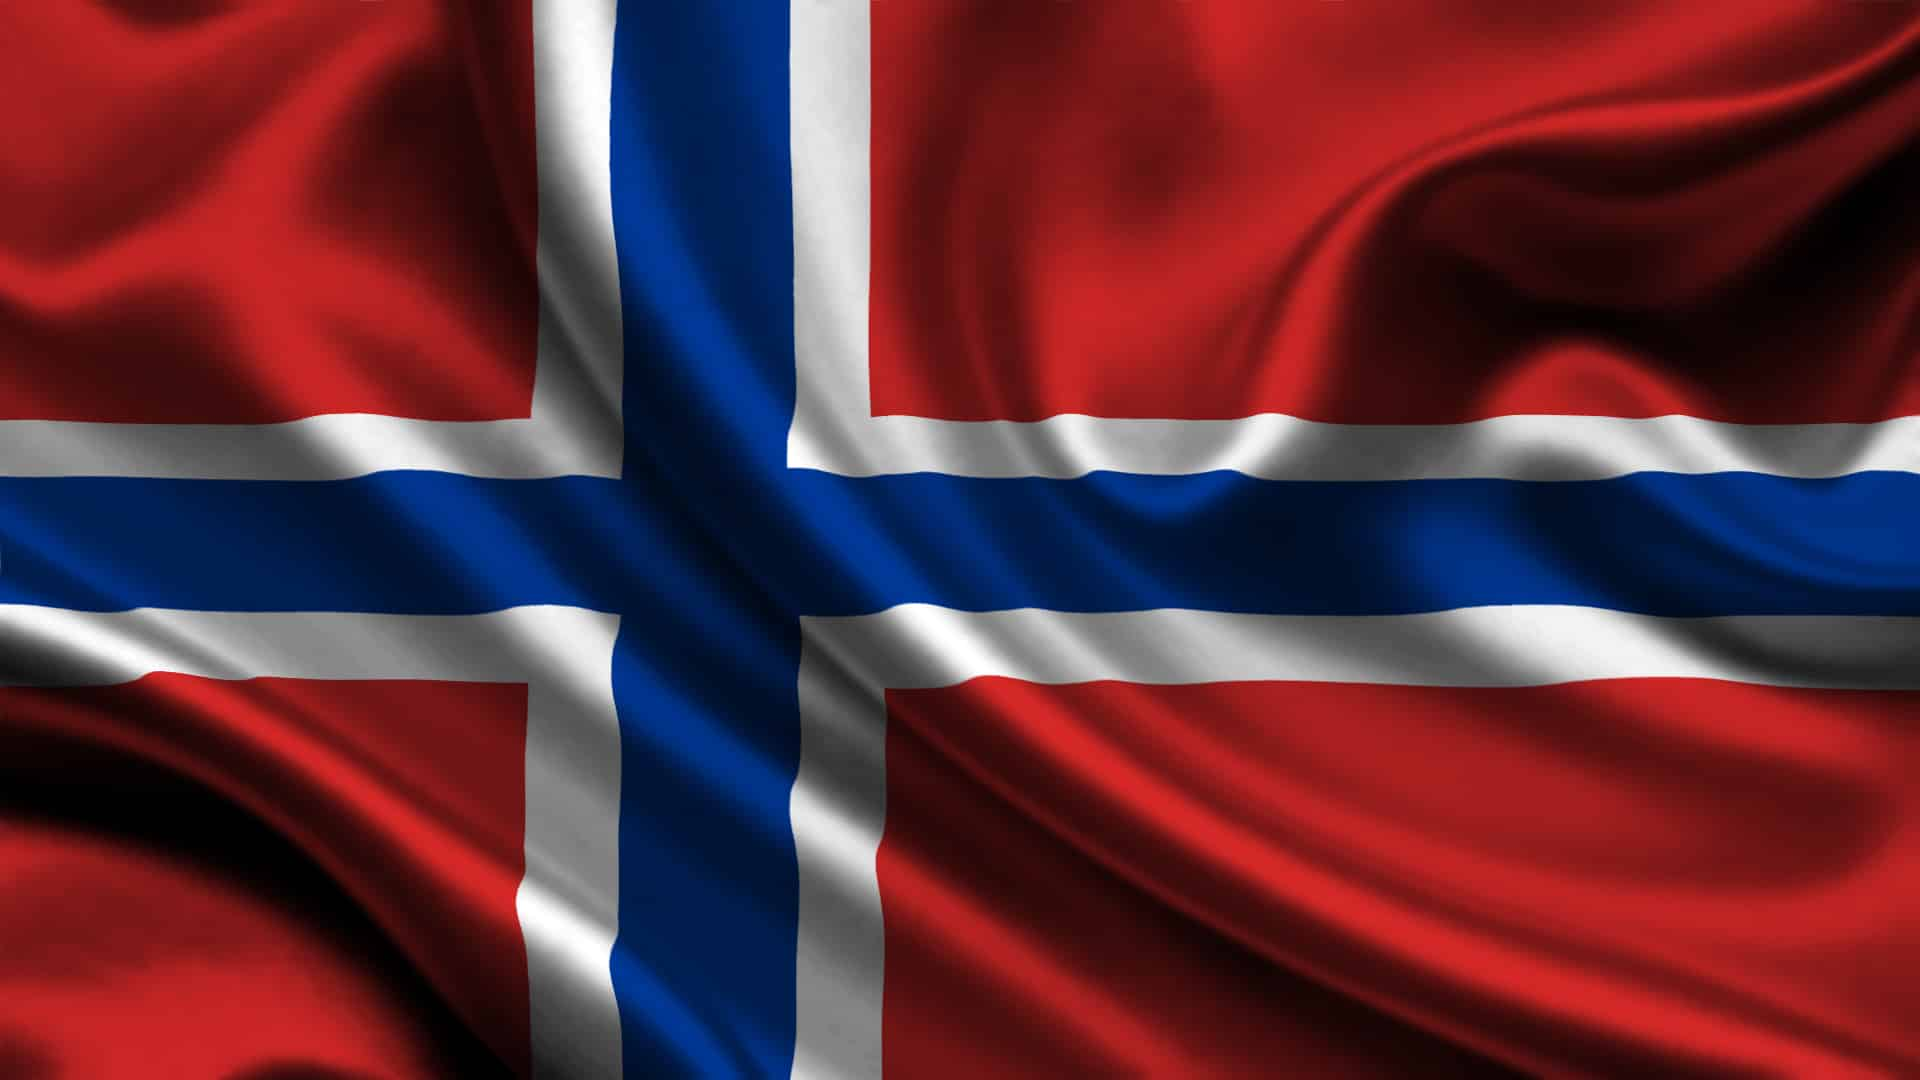 Why should other European economies look up to Norway?